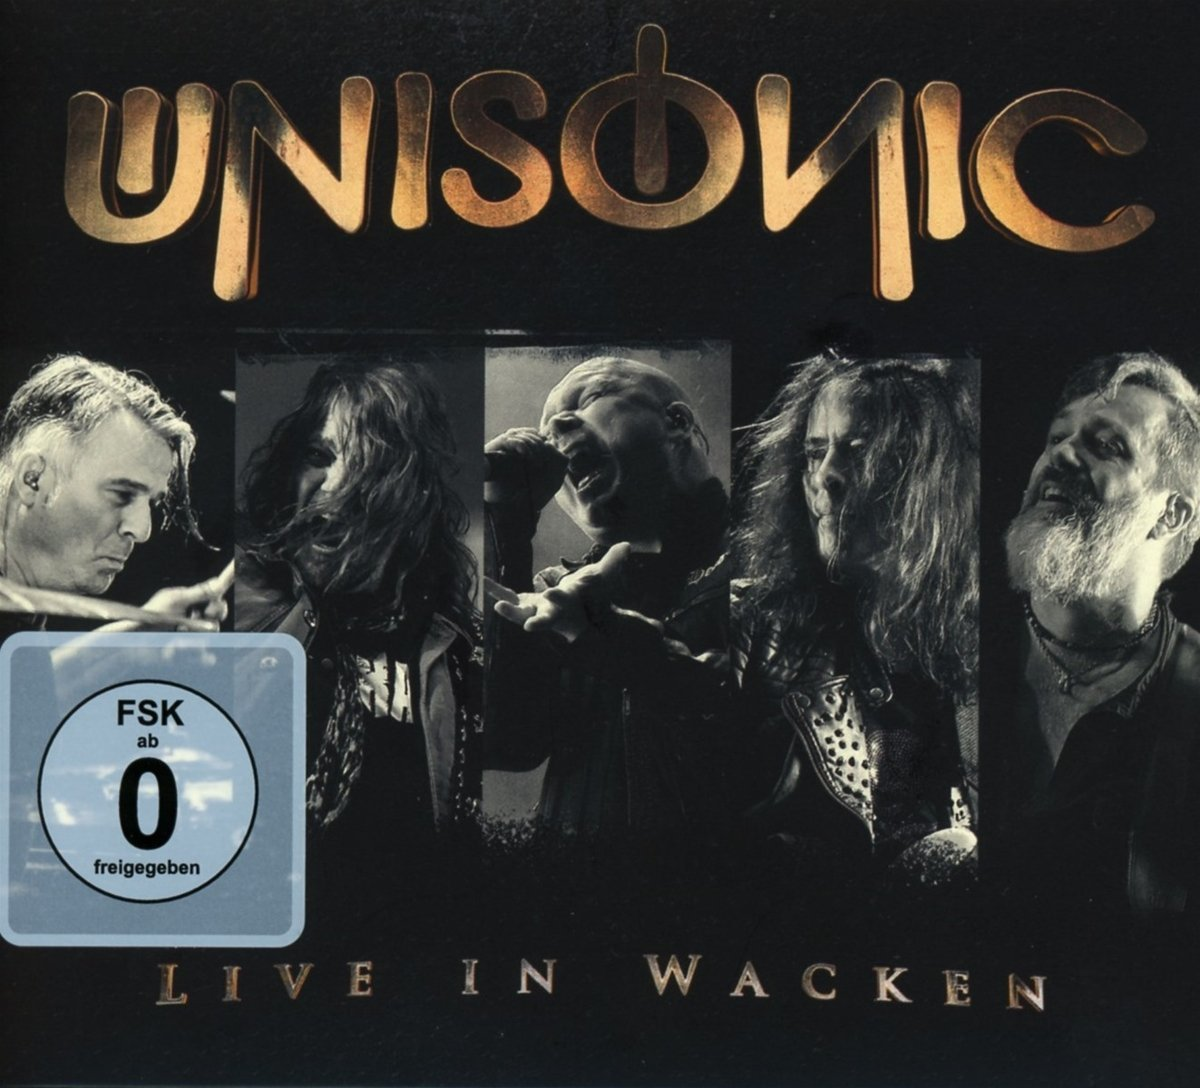 Live in Wacken (Ed. Lda)